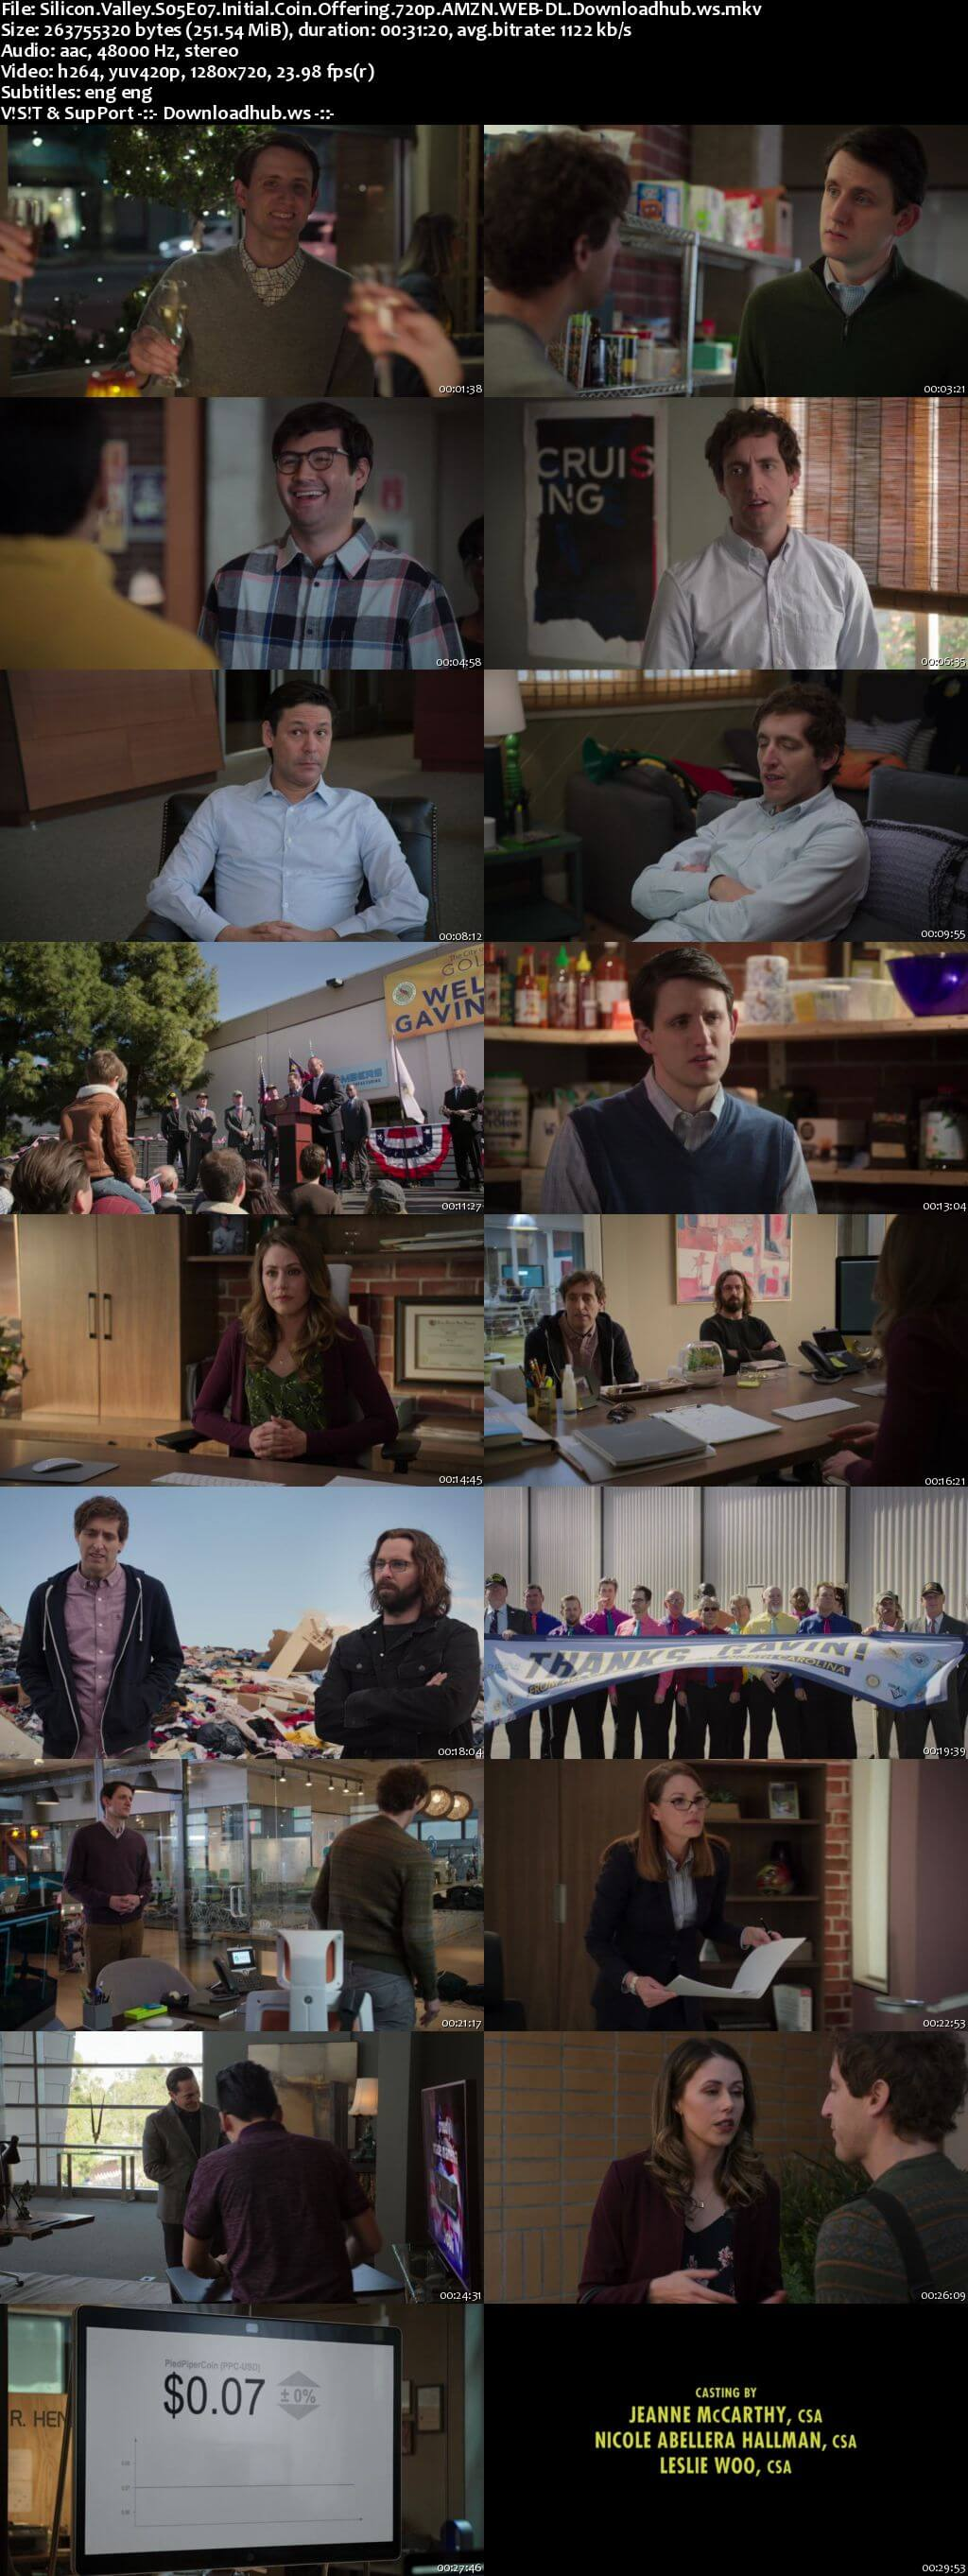 Silicon Valley S05E07 250MB WEBRip 720p x264